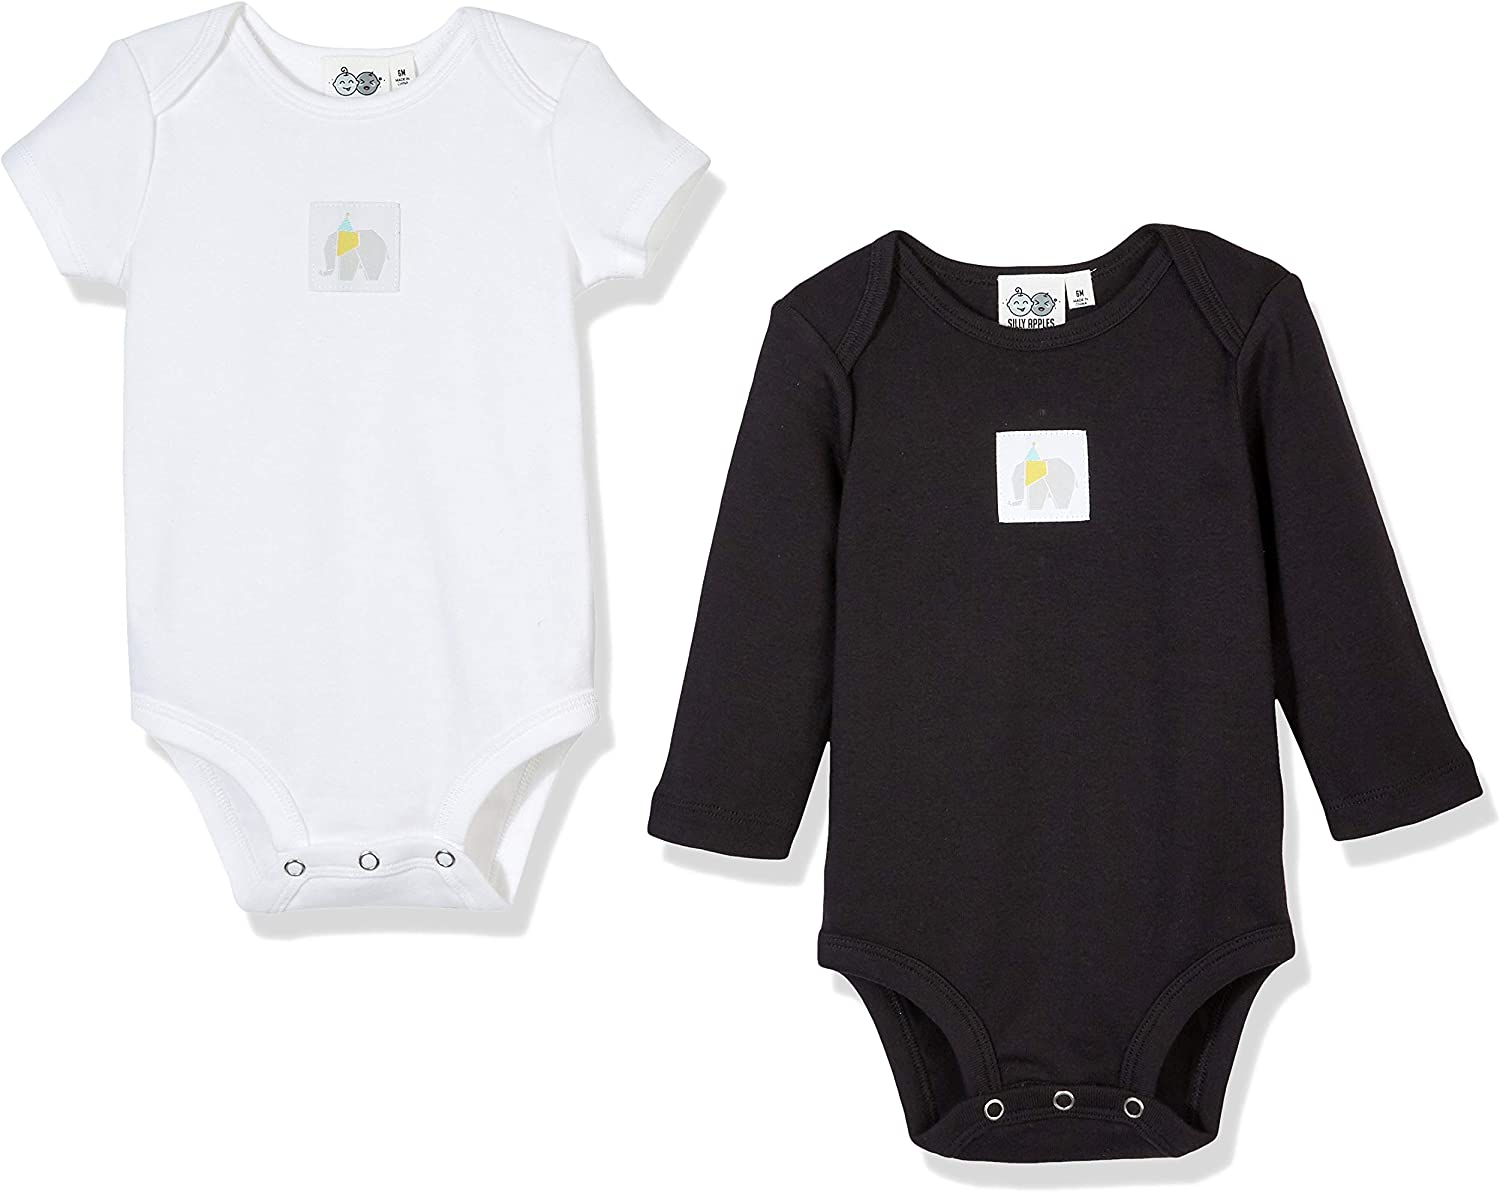 New DEFAHN Baby Bodysuit Solid Pack 2 Long Sleeve Onsies for Newborn Boys Gir..